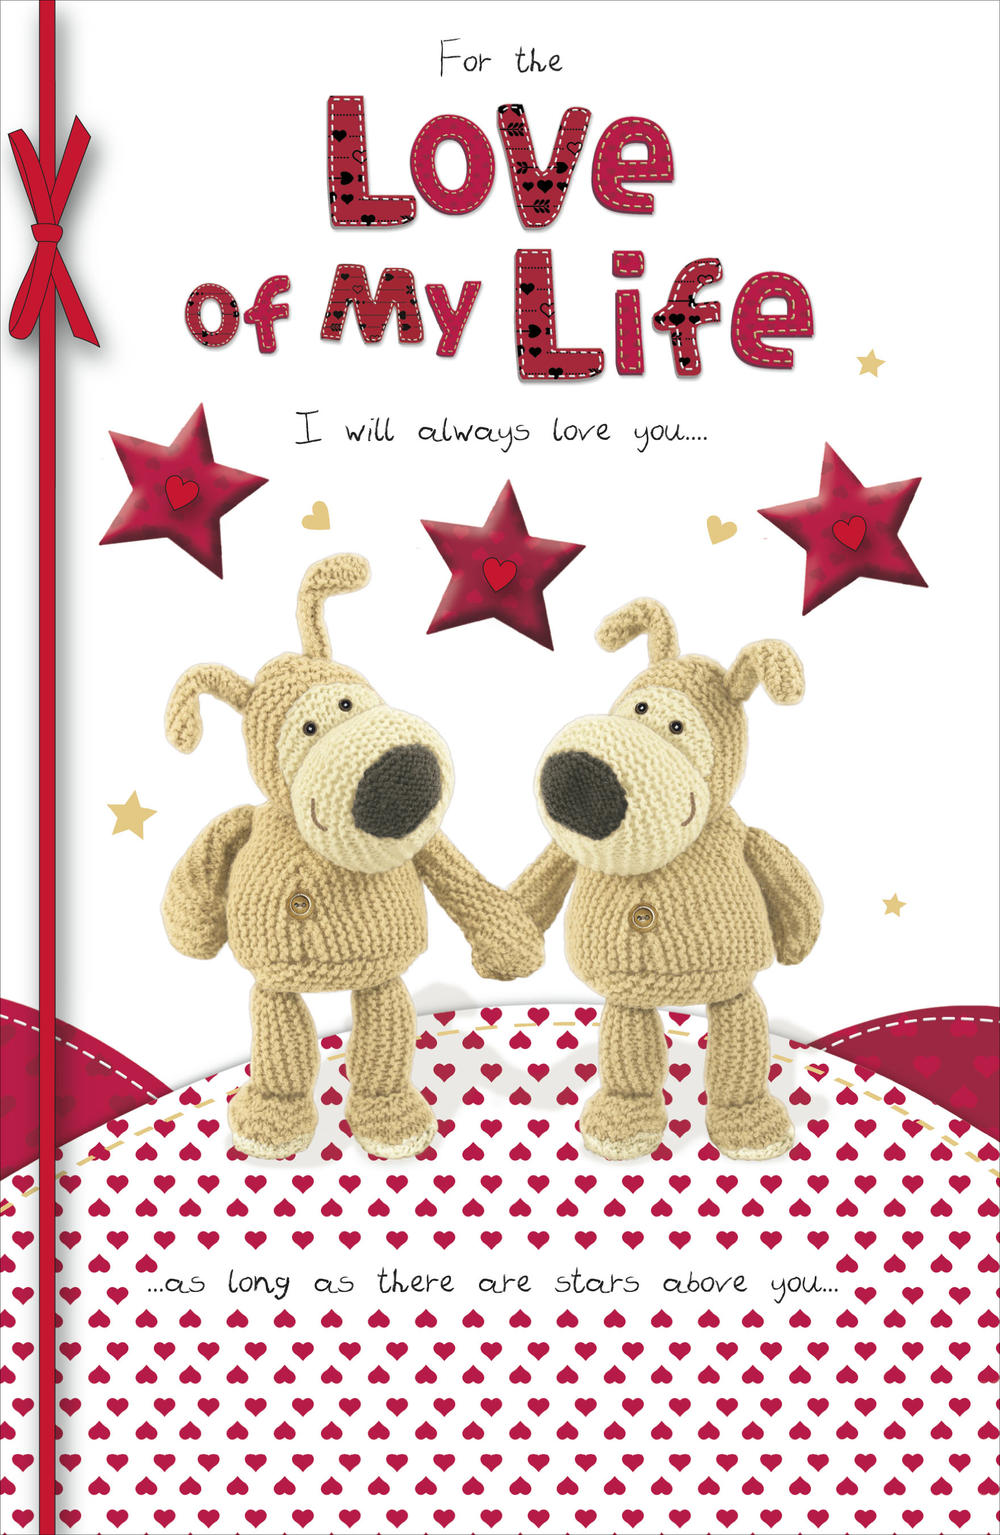 Boofle Love Of My Life Valentine's Day Card